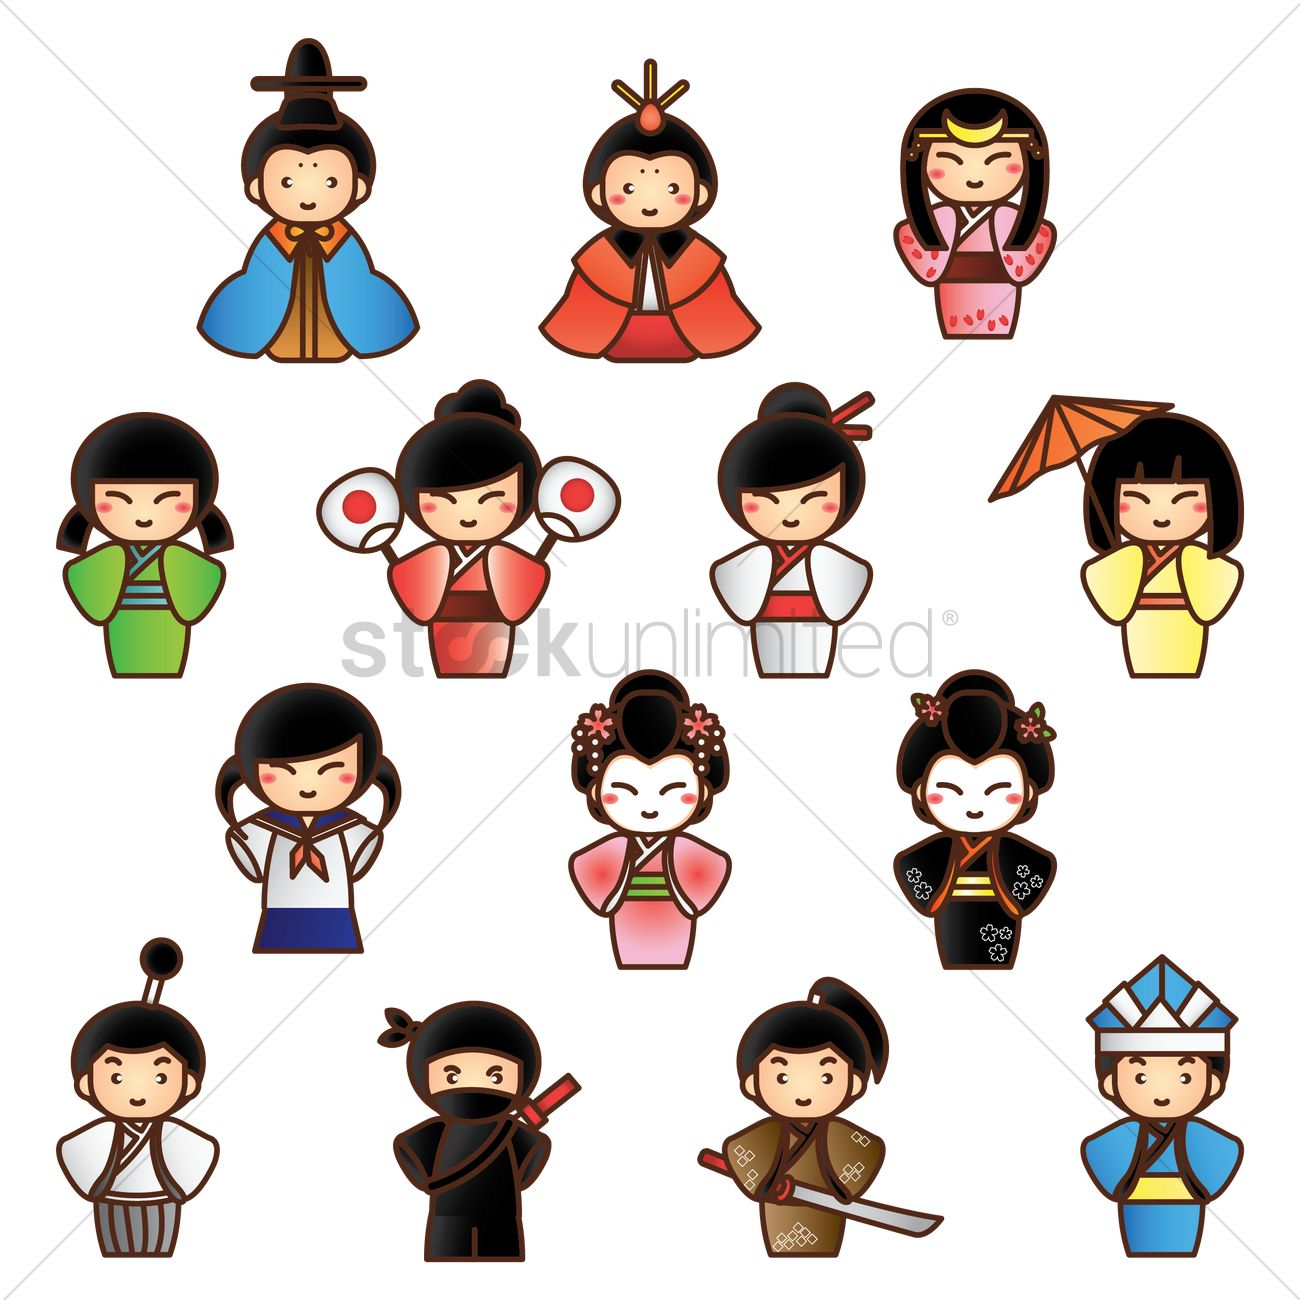 Japanese Person Clipart.